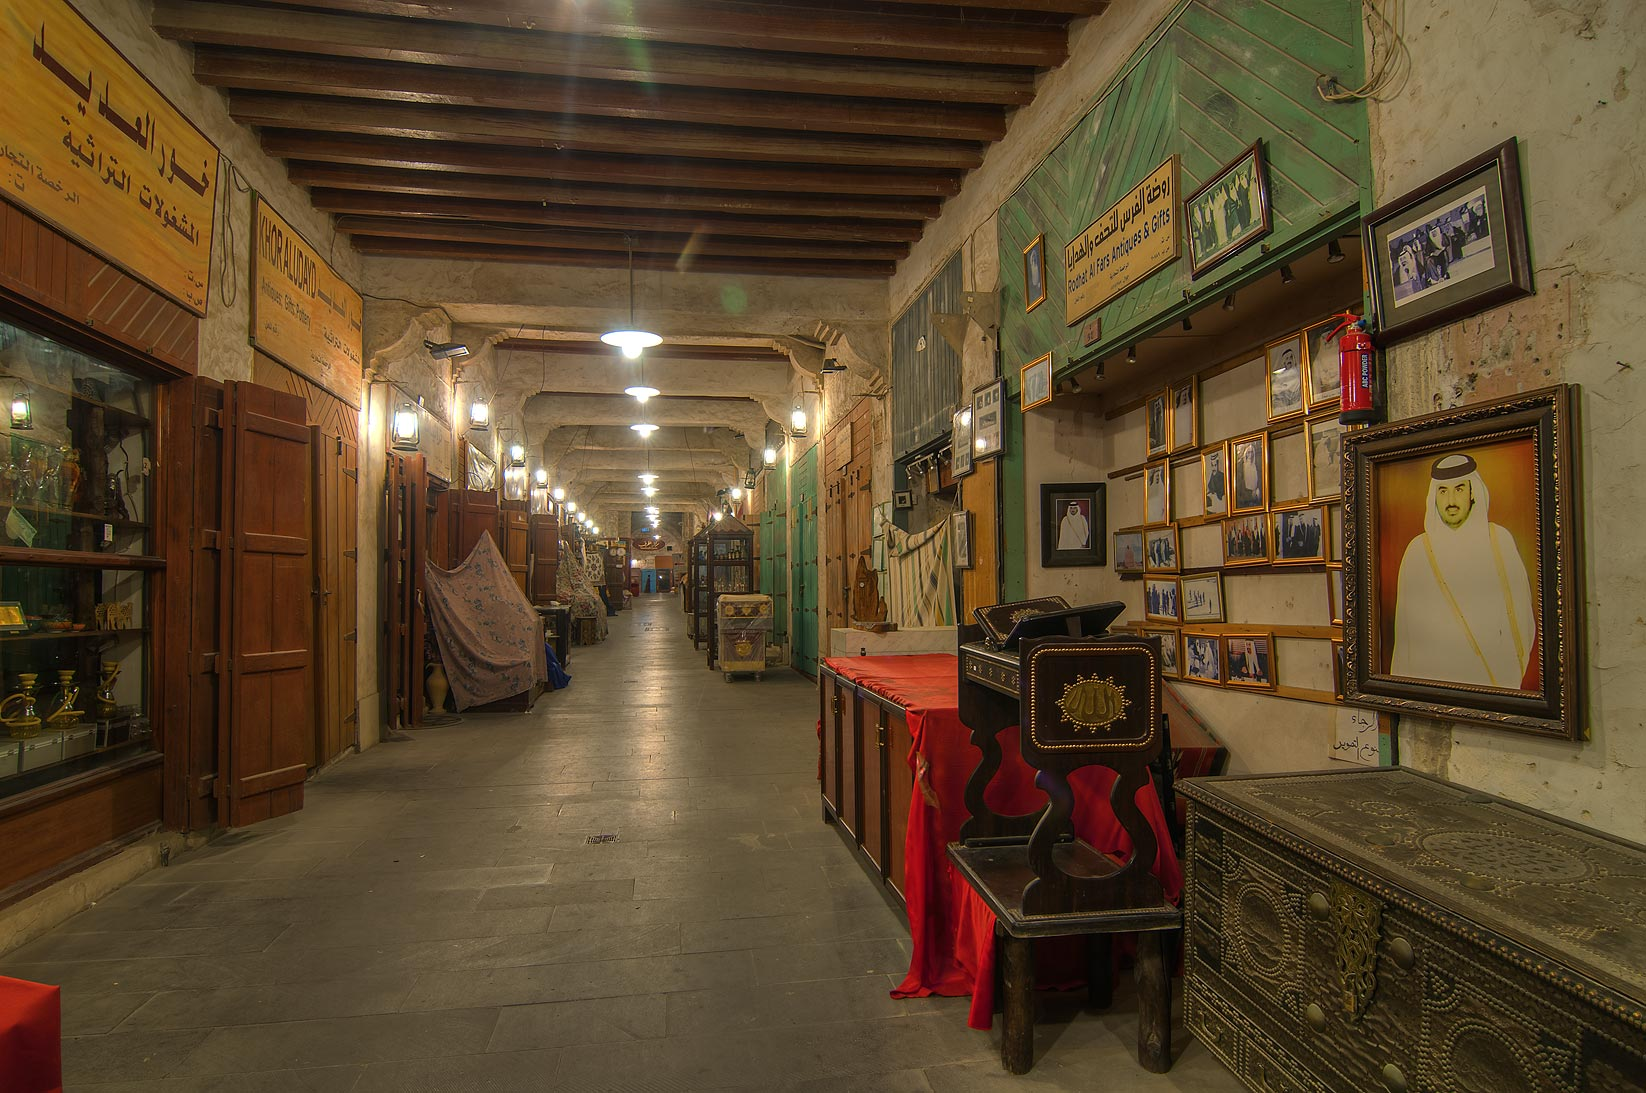 Gallery in Souq Waqif (Old Market). Doha, Qatar